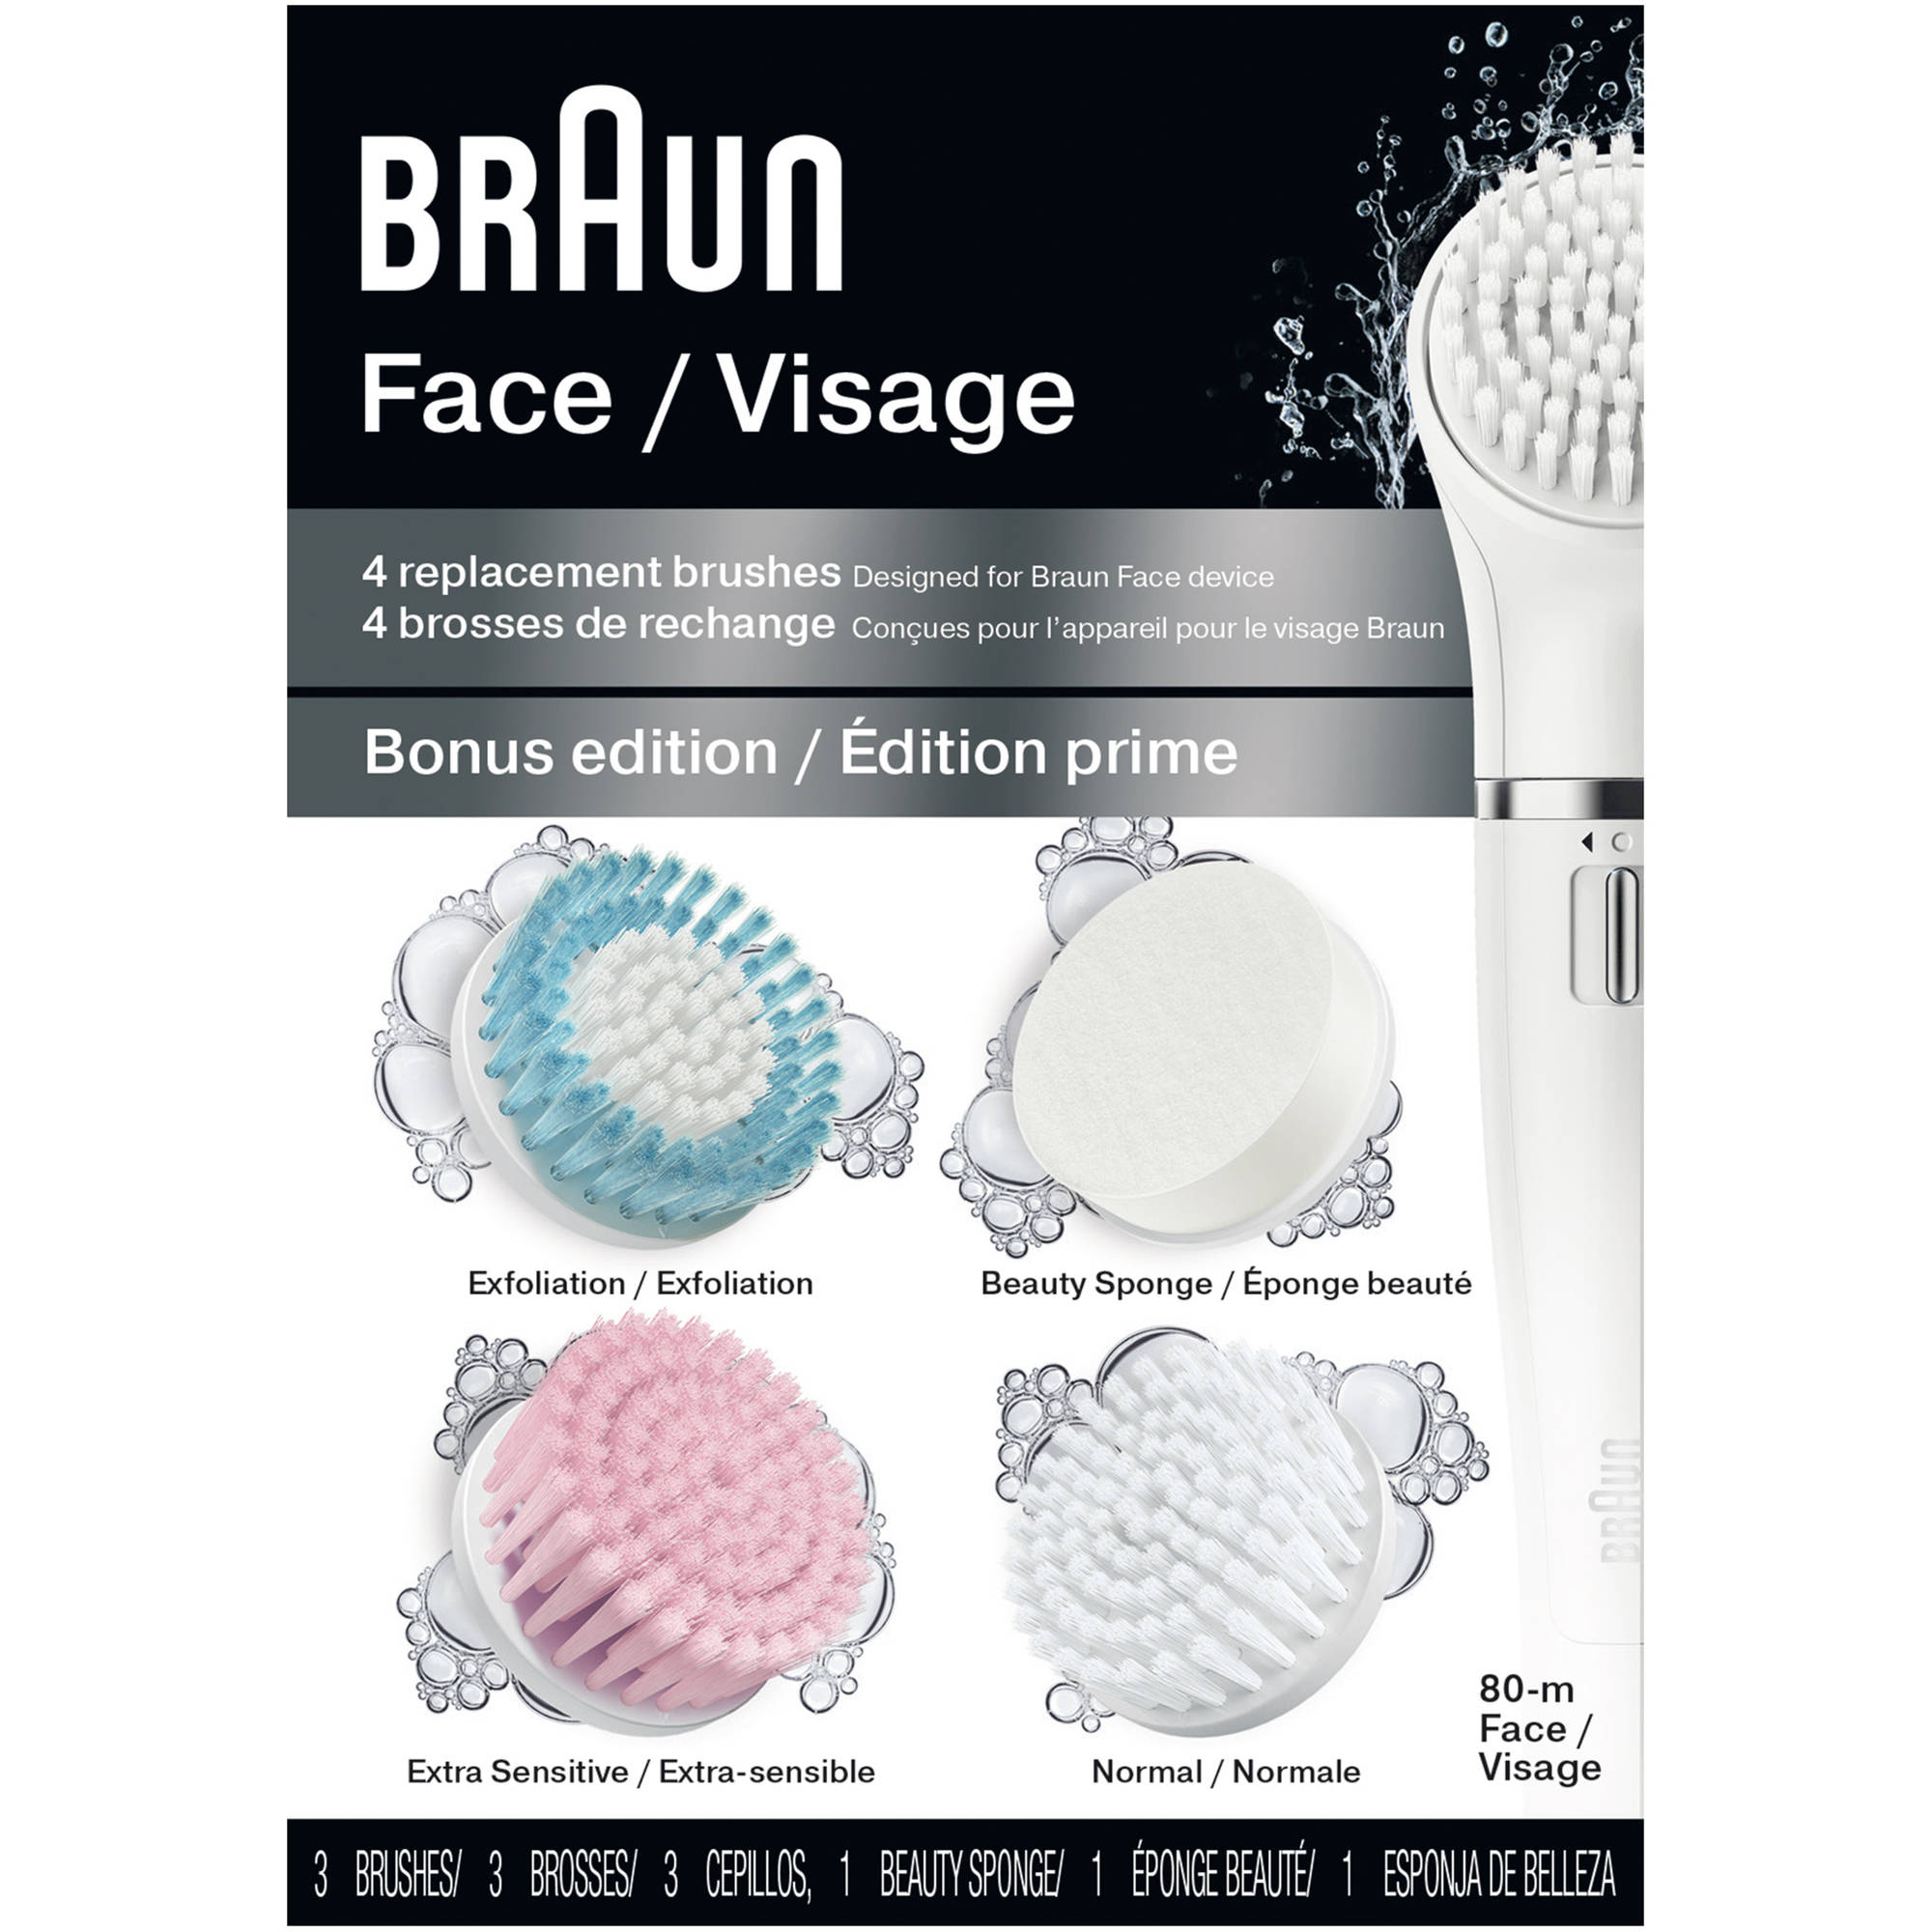 Braun Face 80-m Bonus Edition Replacement Brushes, 4 pc